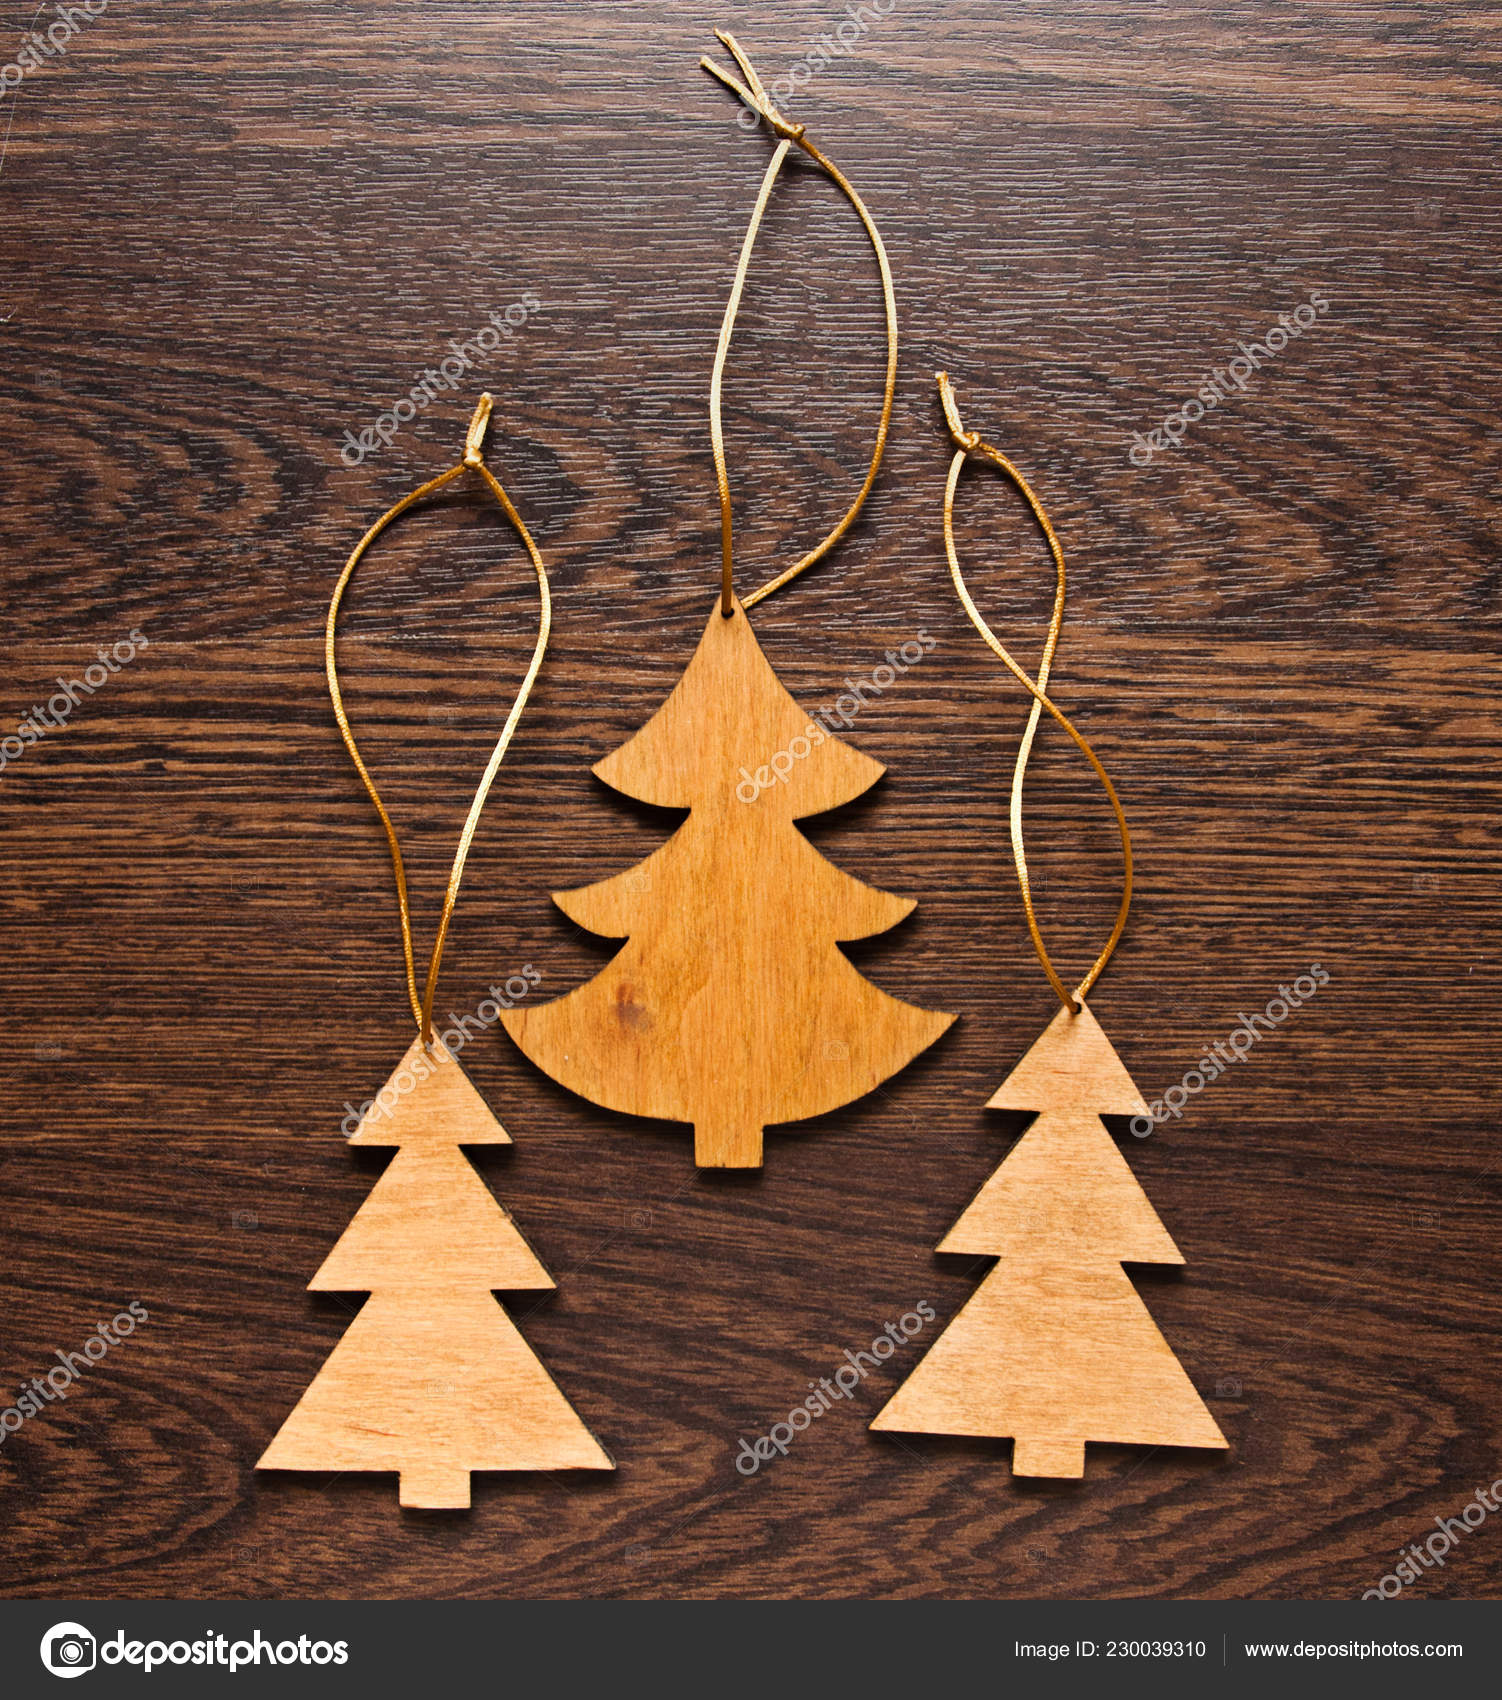 Three Handmade Wooden Christmas Trees Wooden Background Christmas Decorations Toys Stock Photo C Nataly0288dp 230039310